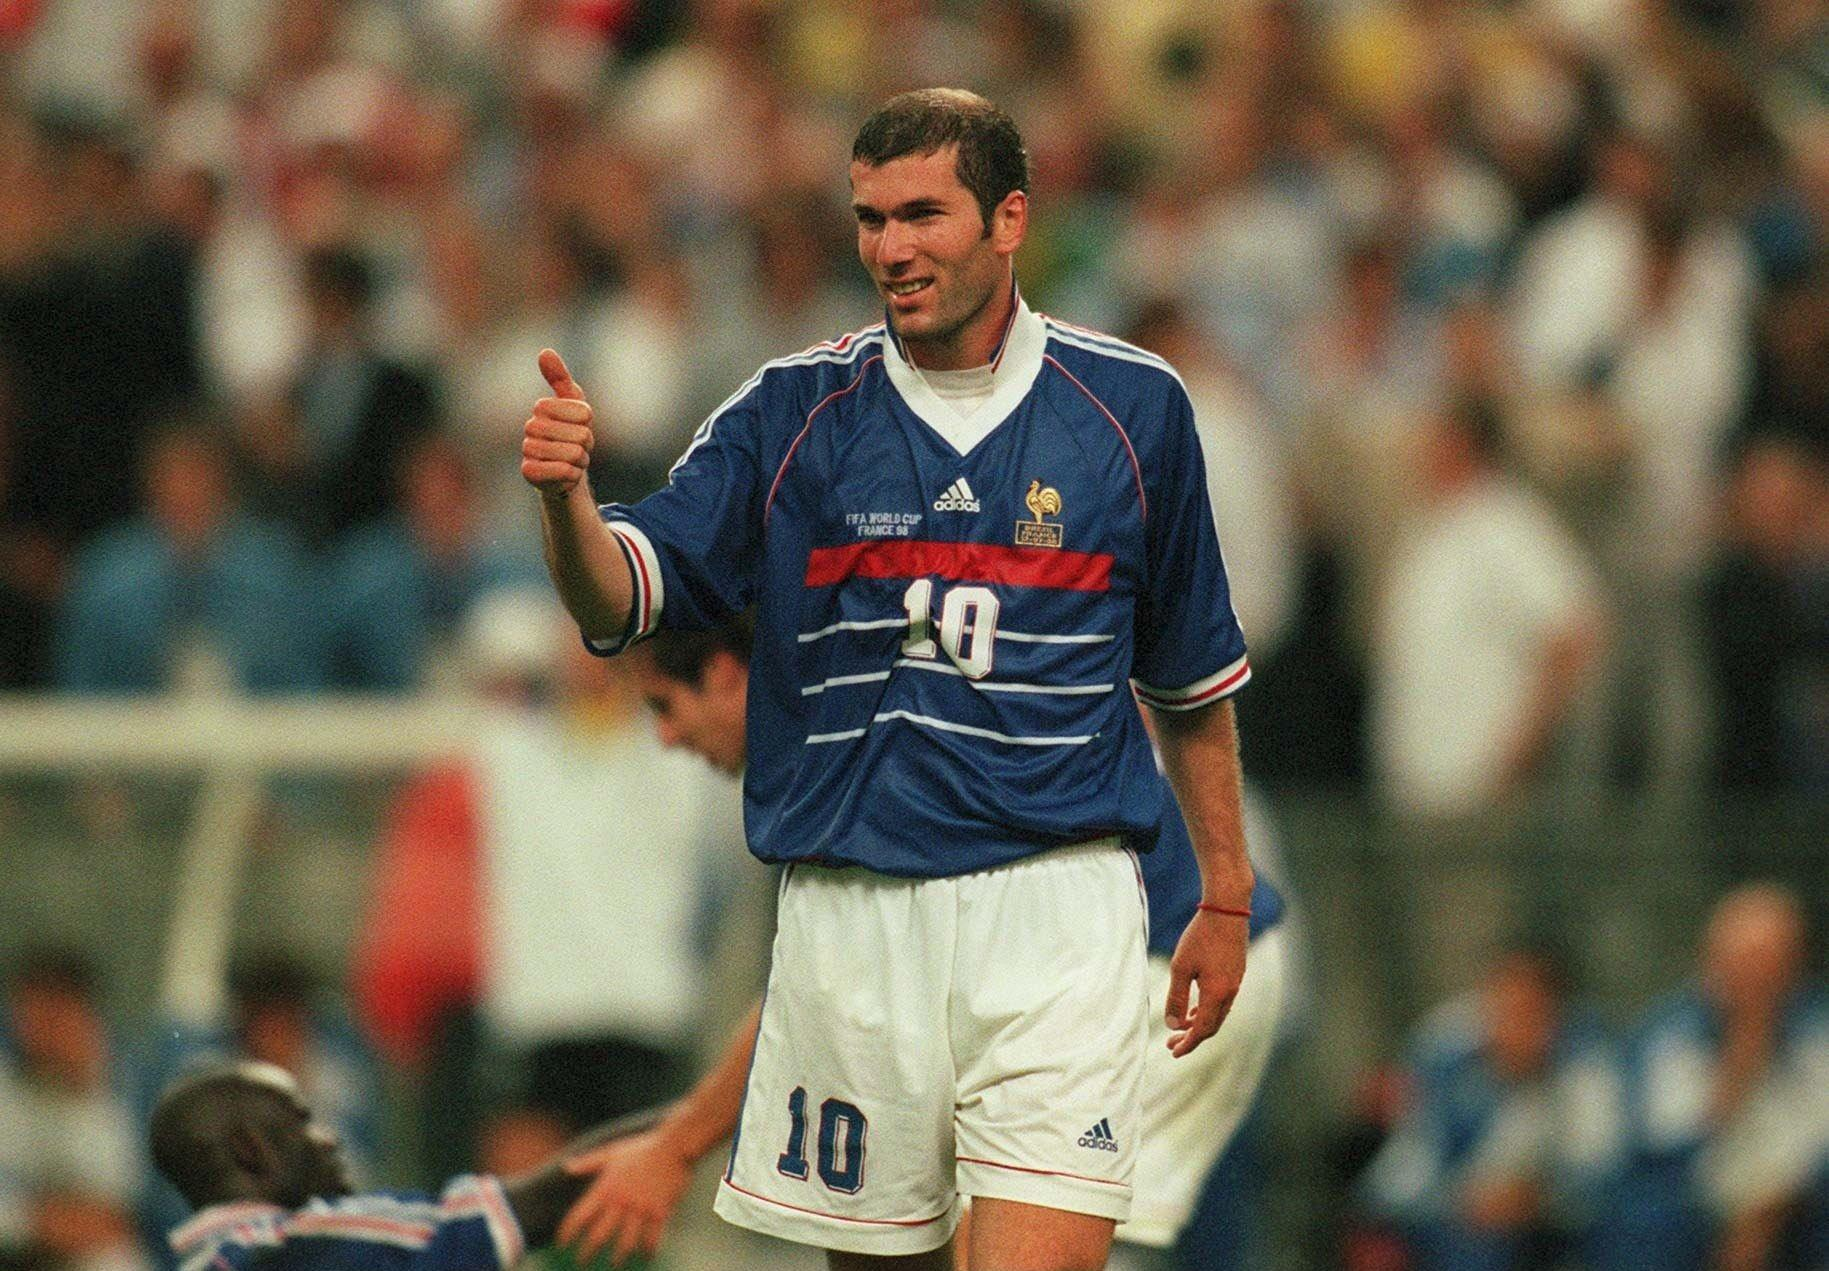 1998 will always be remembered as 'The Zidane final'